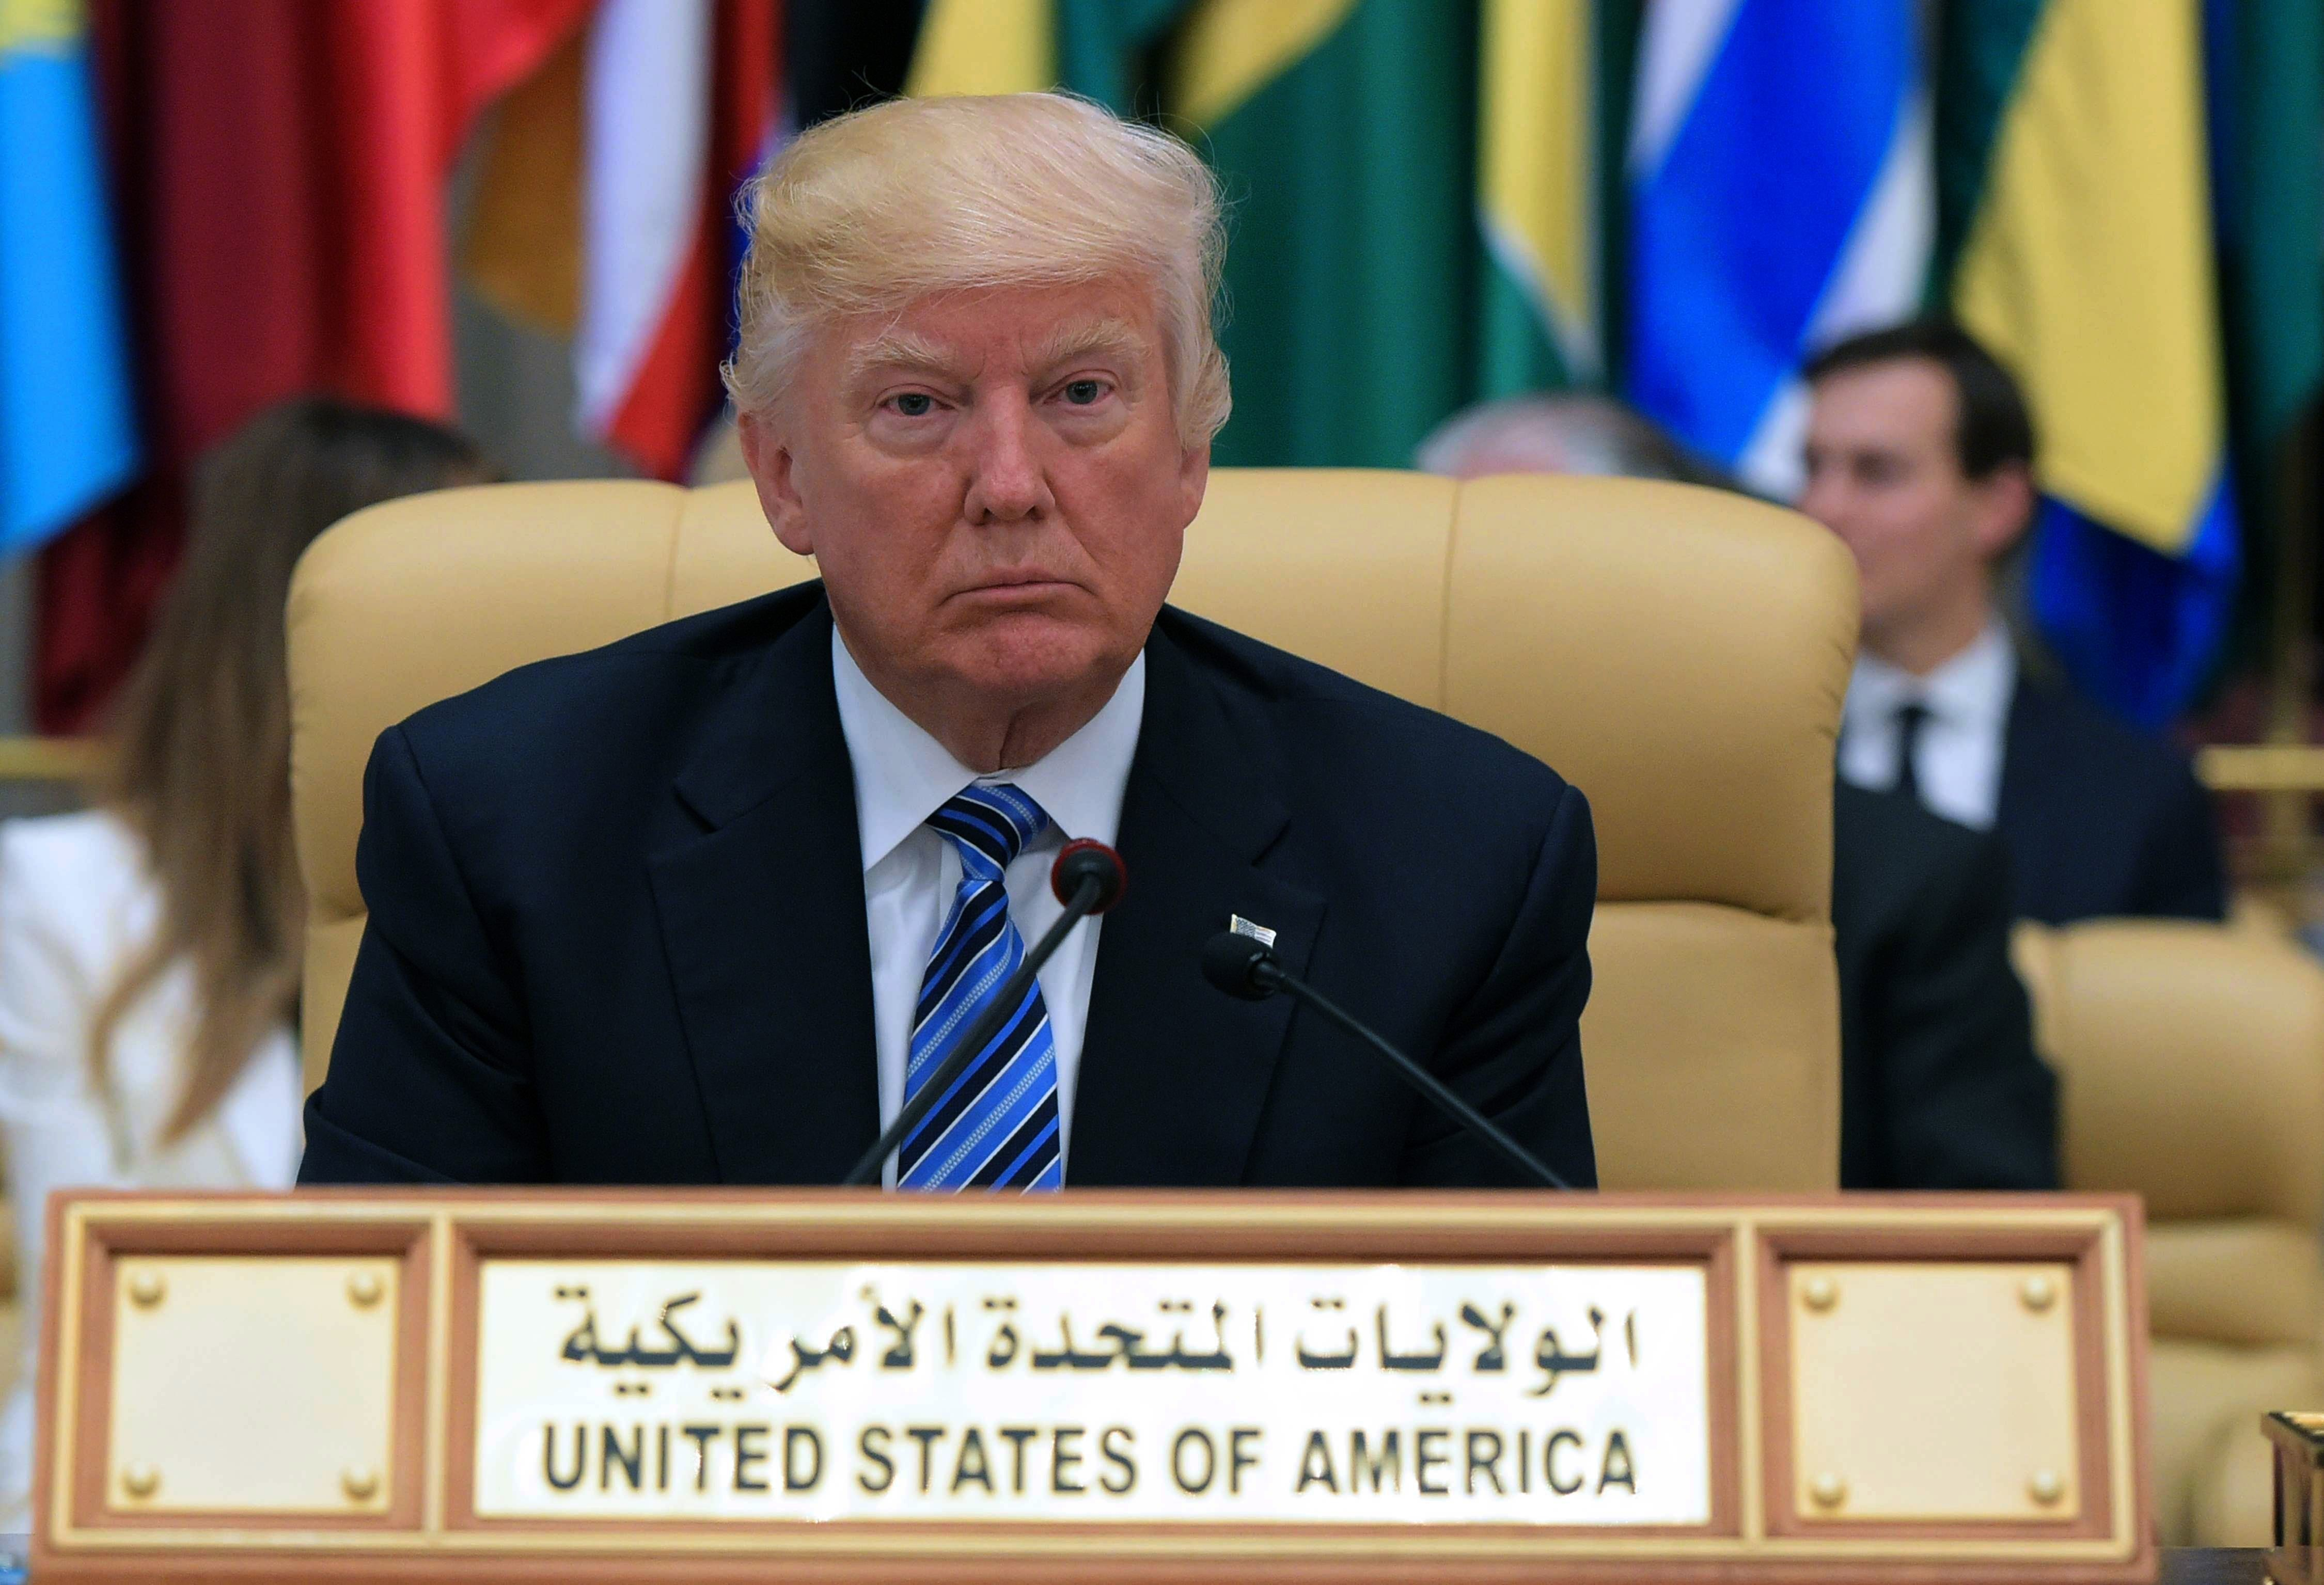 President Donald Trump is seated during the Arab Islamic American Summit at the King Abdulaziz Conference Center in Riyadh on